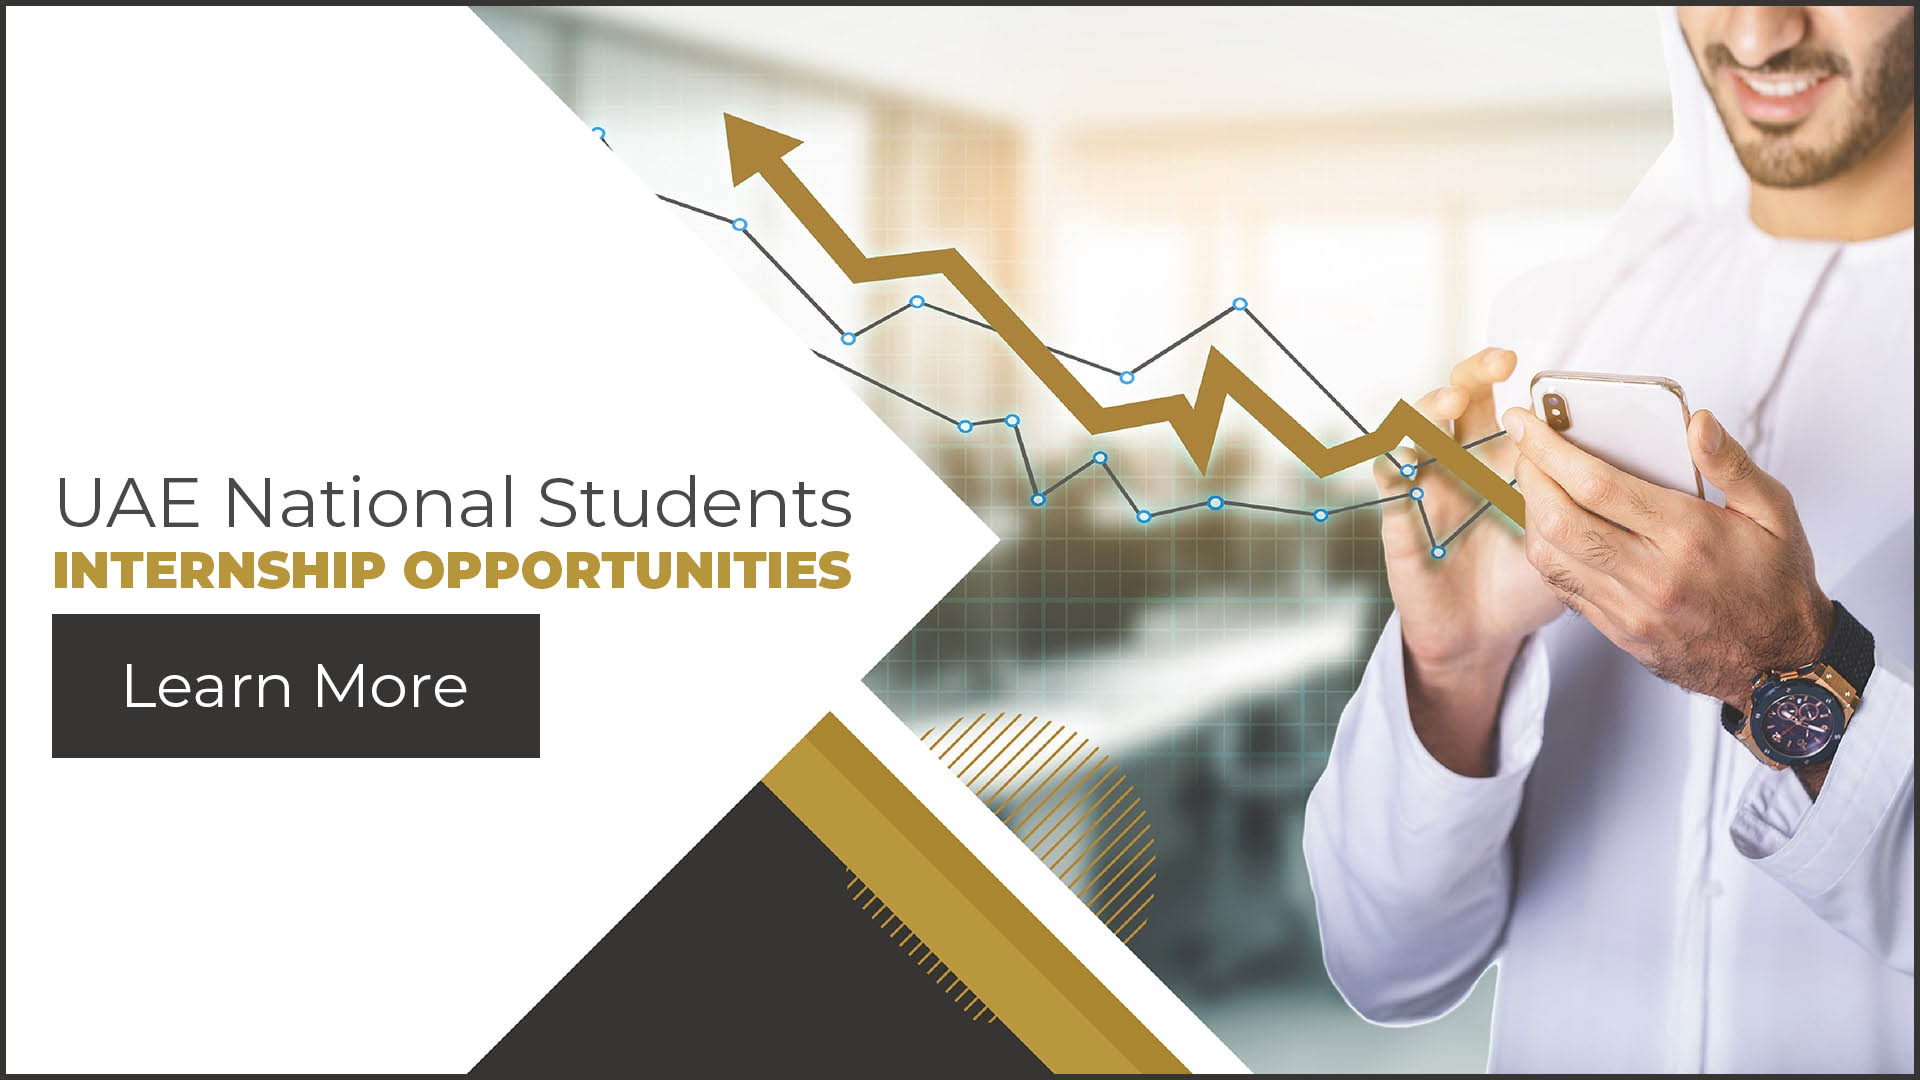 UAE National Students Internship Opportunities